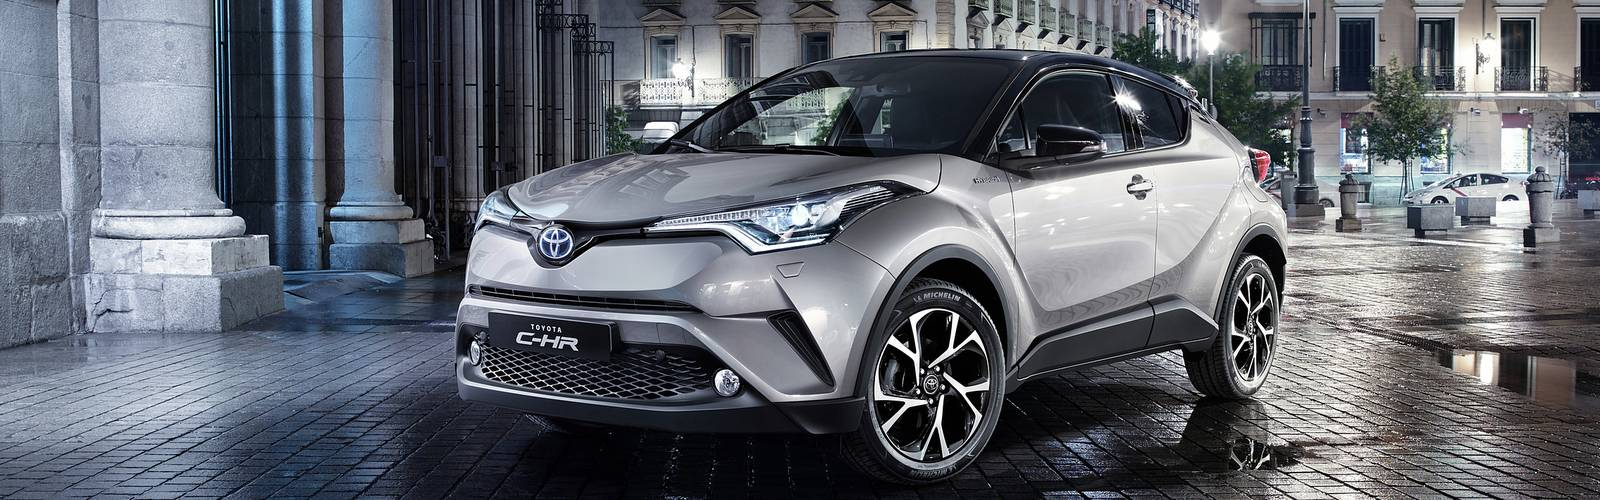 toyota-c-hr-hybrid-new-covertoyota chr ibryd Automotive chioggia